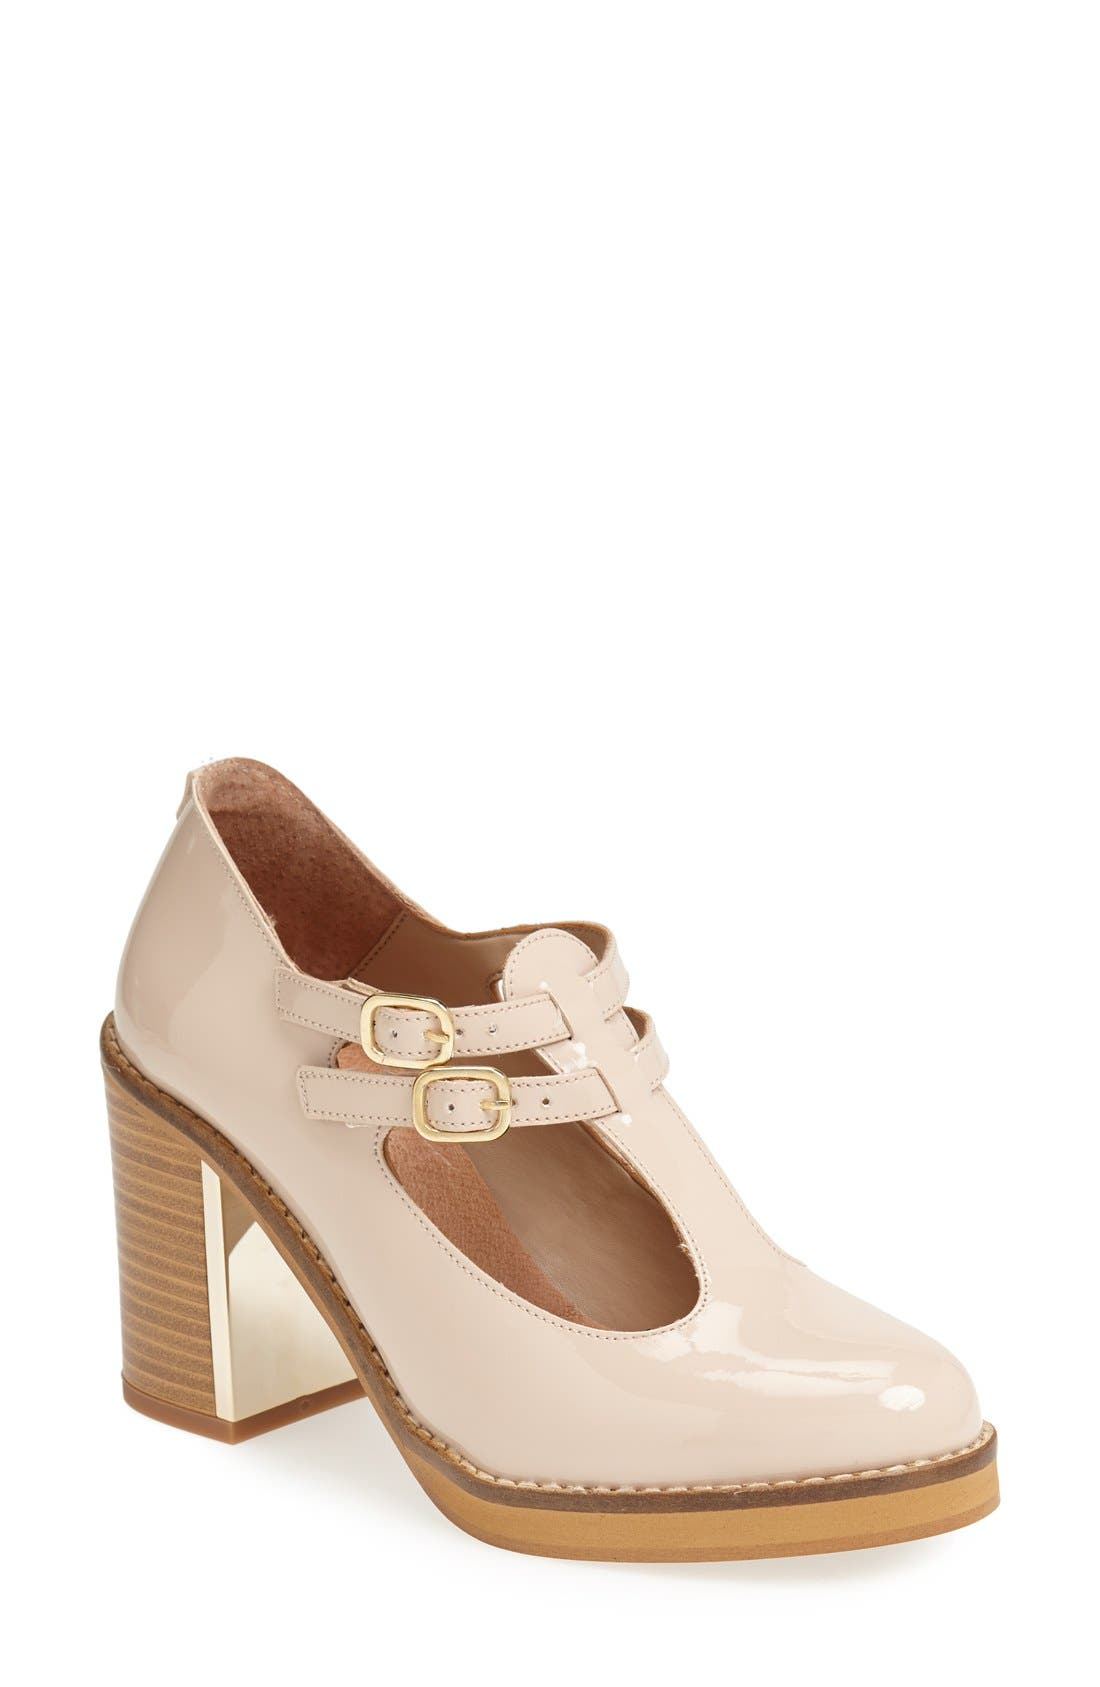 Alternate Image 1 Selected - Topshop 'Gess' Mary Jane T-Strap Pump (Women)